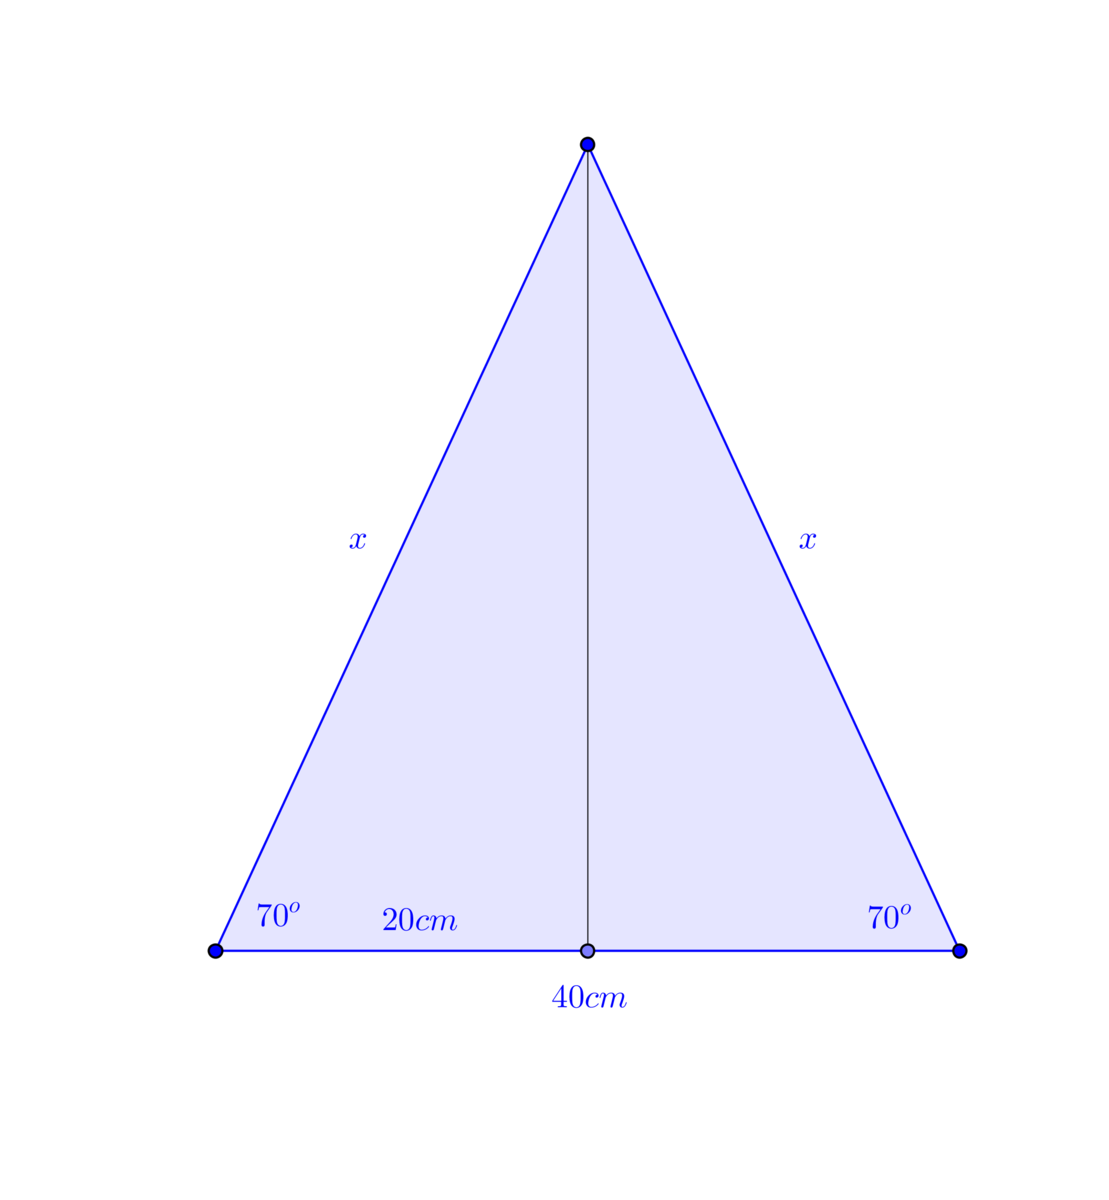 The perimeter of an isosceles triangle is 16